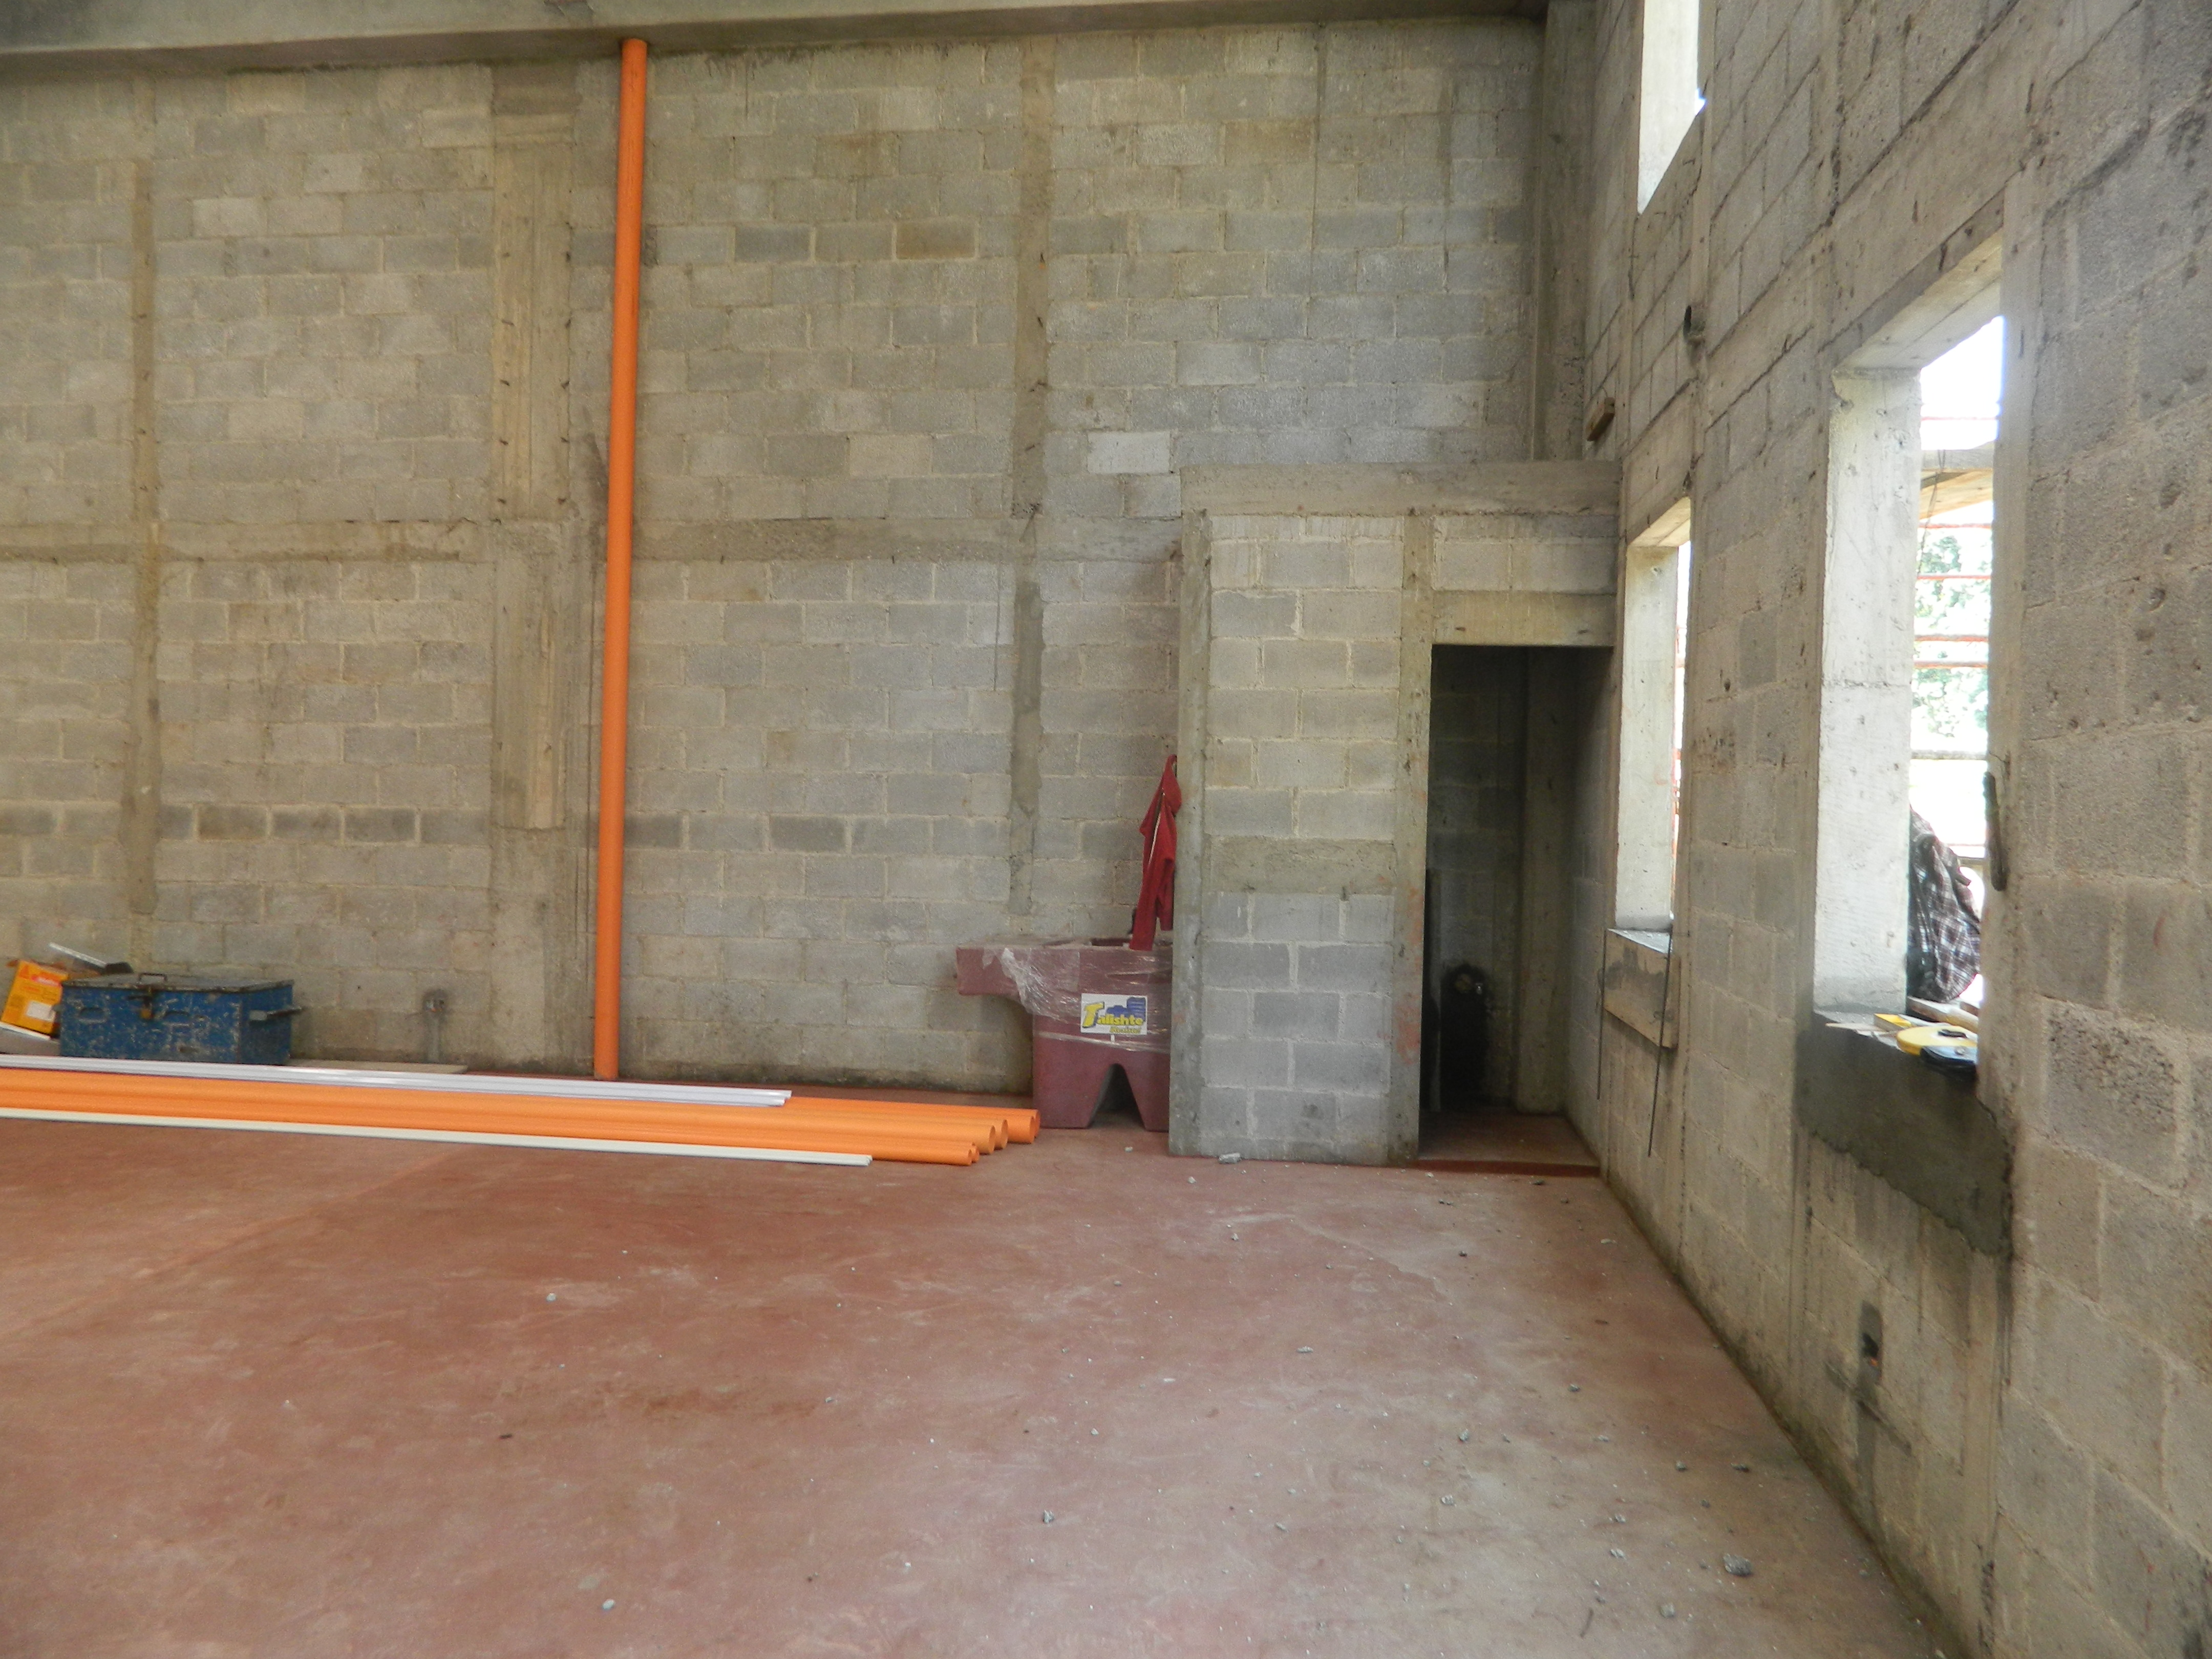 4660 WAREHOUSE FOR RENT CLOSE TO CENTRAL ANTIGUA (From: 17m2. Under construction)